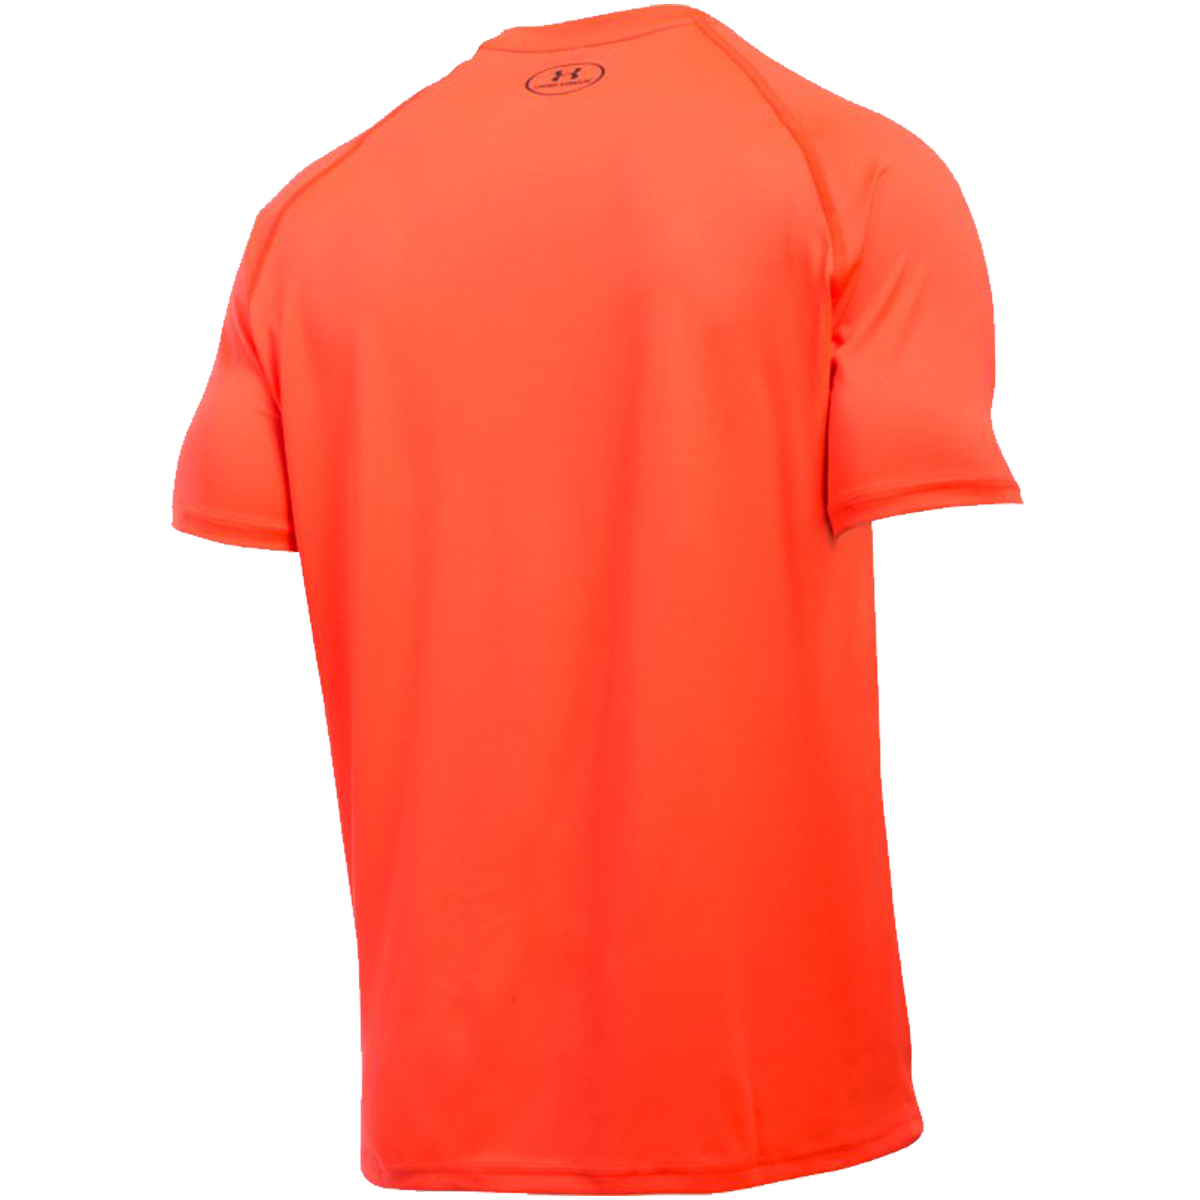 Under-Armour-Mens-UA-Tech-SS-T-Shirt-HeatGear-Training-31-OFF-RRP thumbnail 32